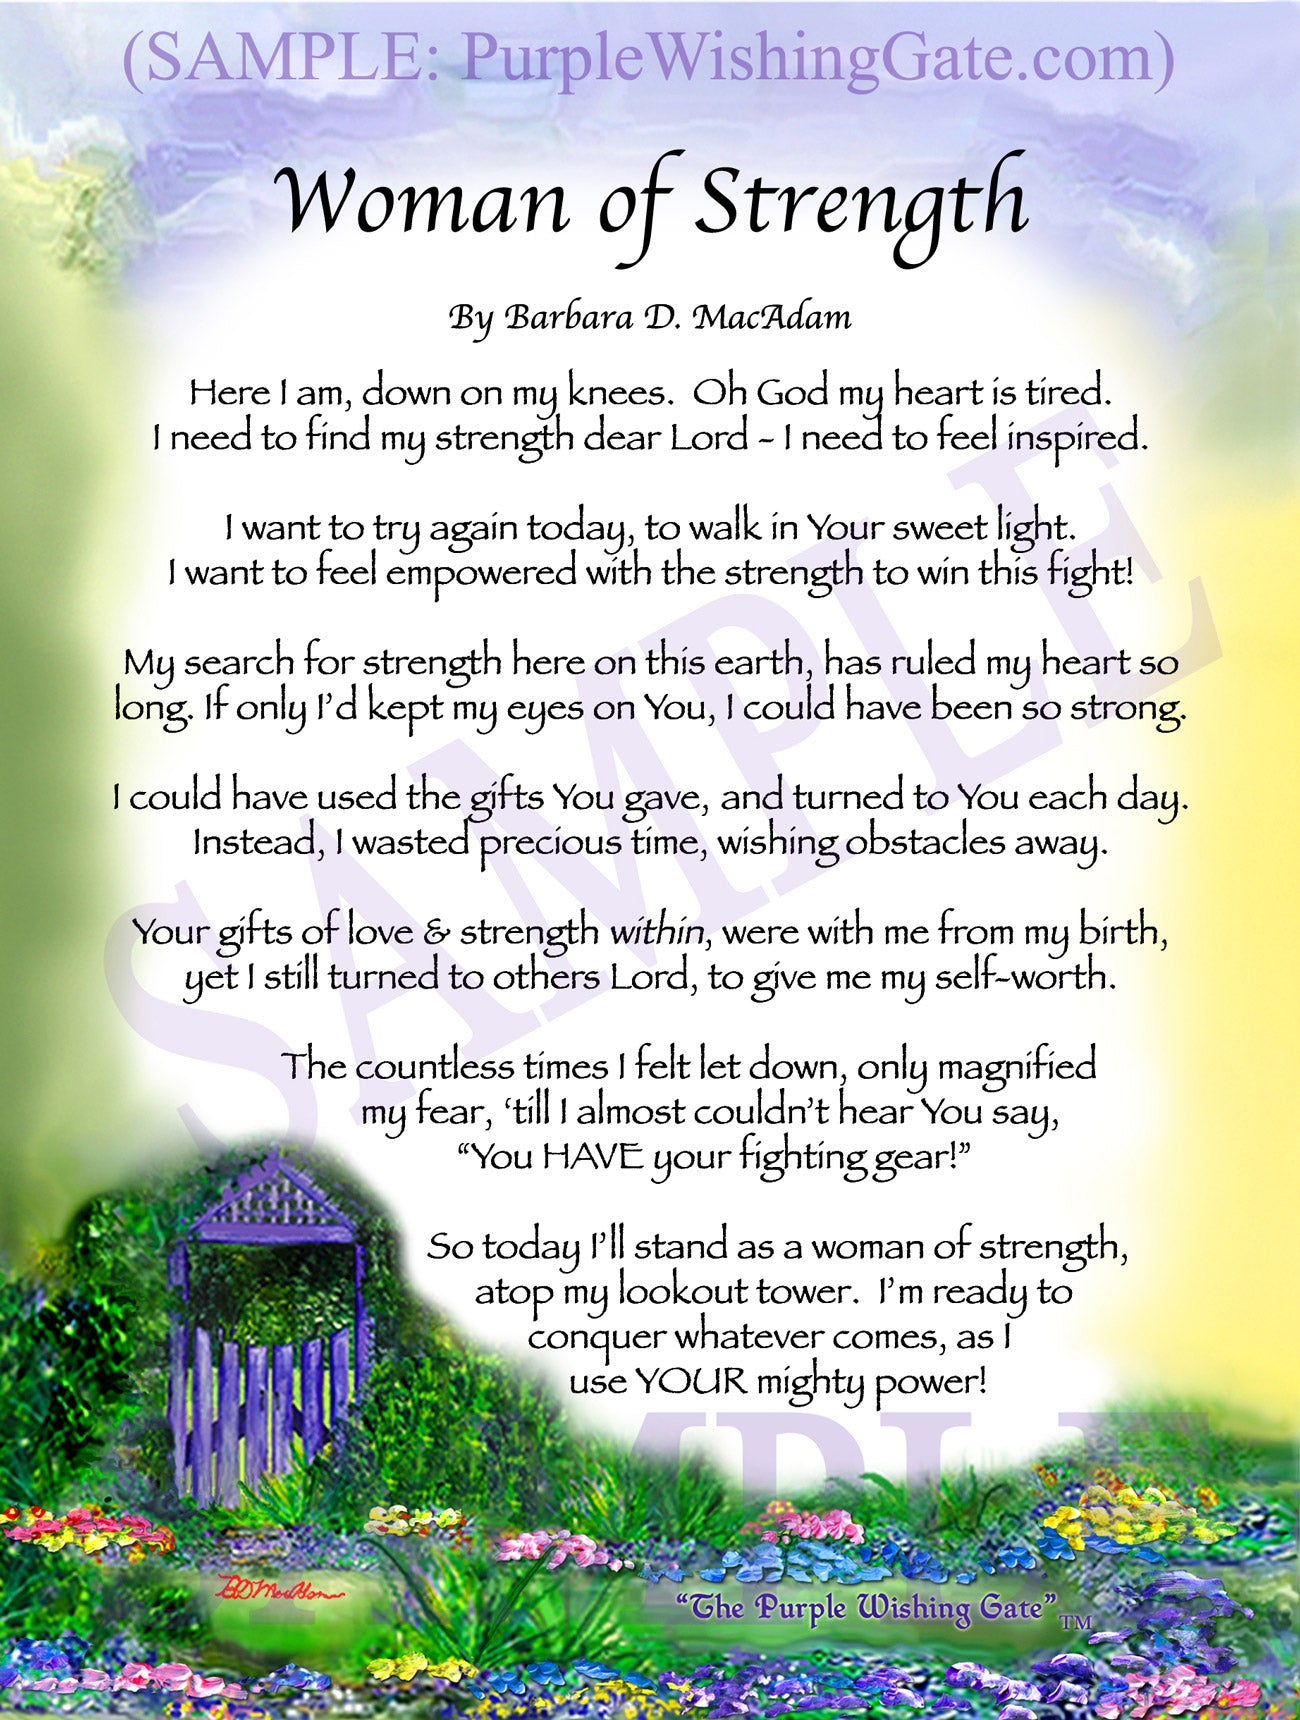 Woman of Strength - Sister-Women Gift - PurpleWishingGate.com